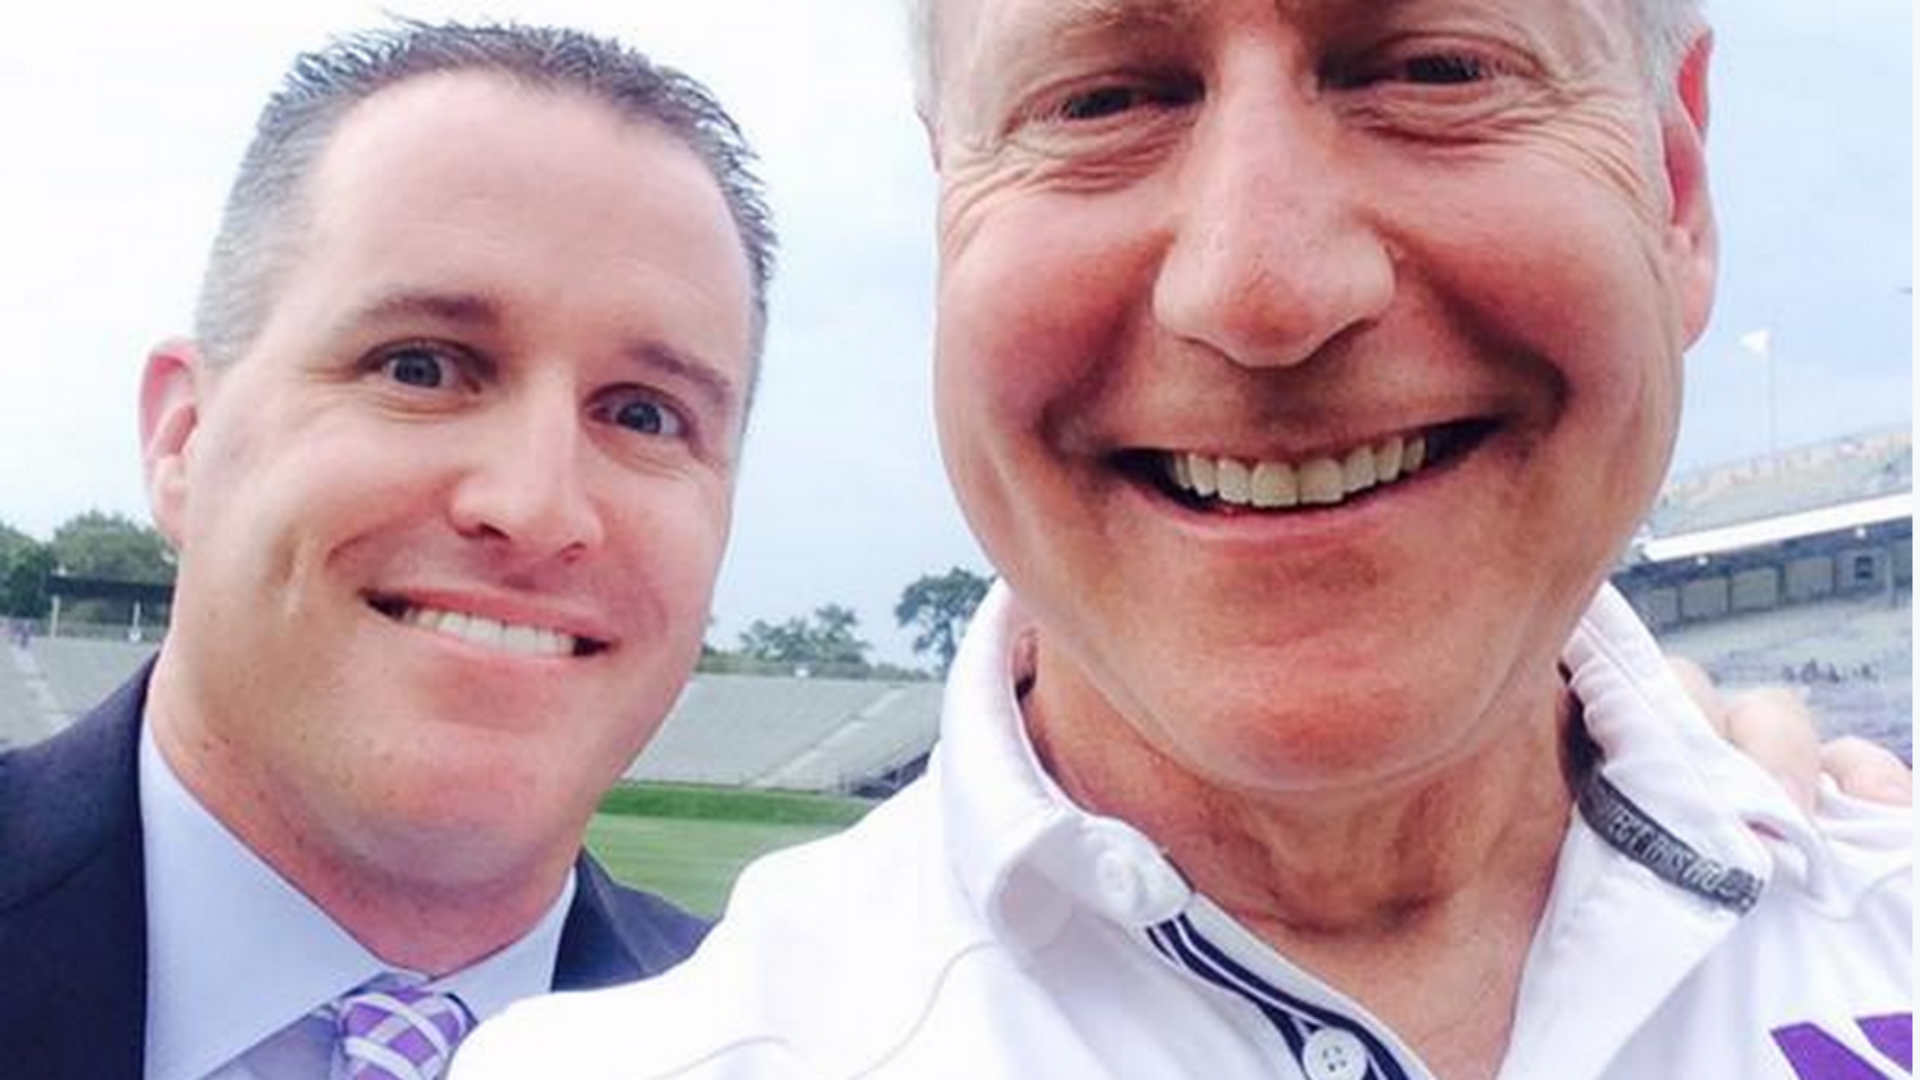 selfies and signed football with pat fitzgerald that ll cost you 125 ncaa [ 1920 x 1080 Pixel ]